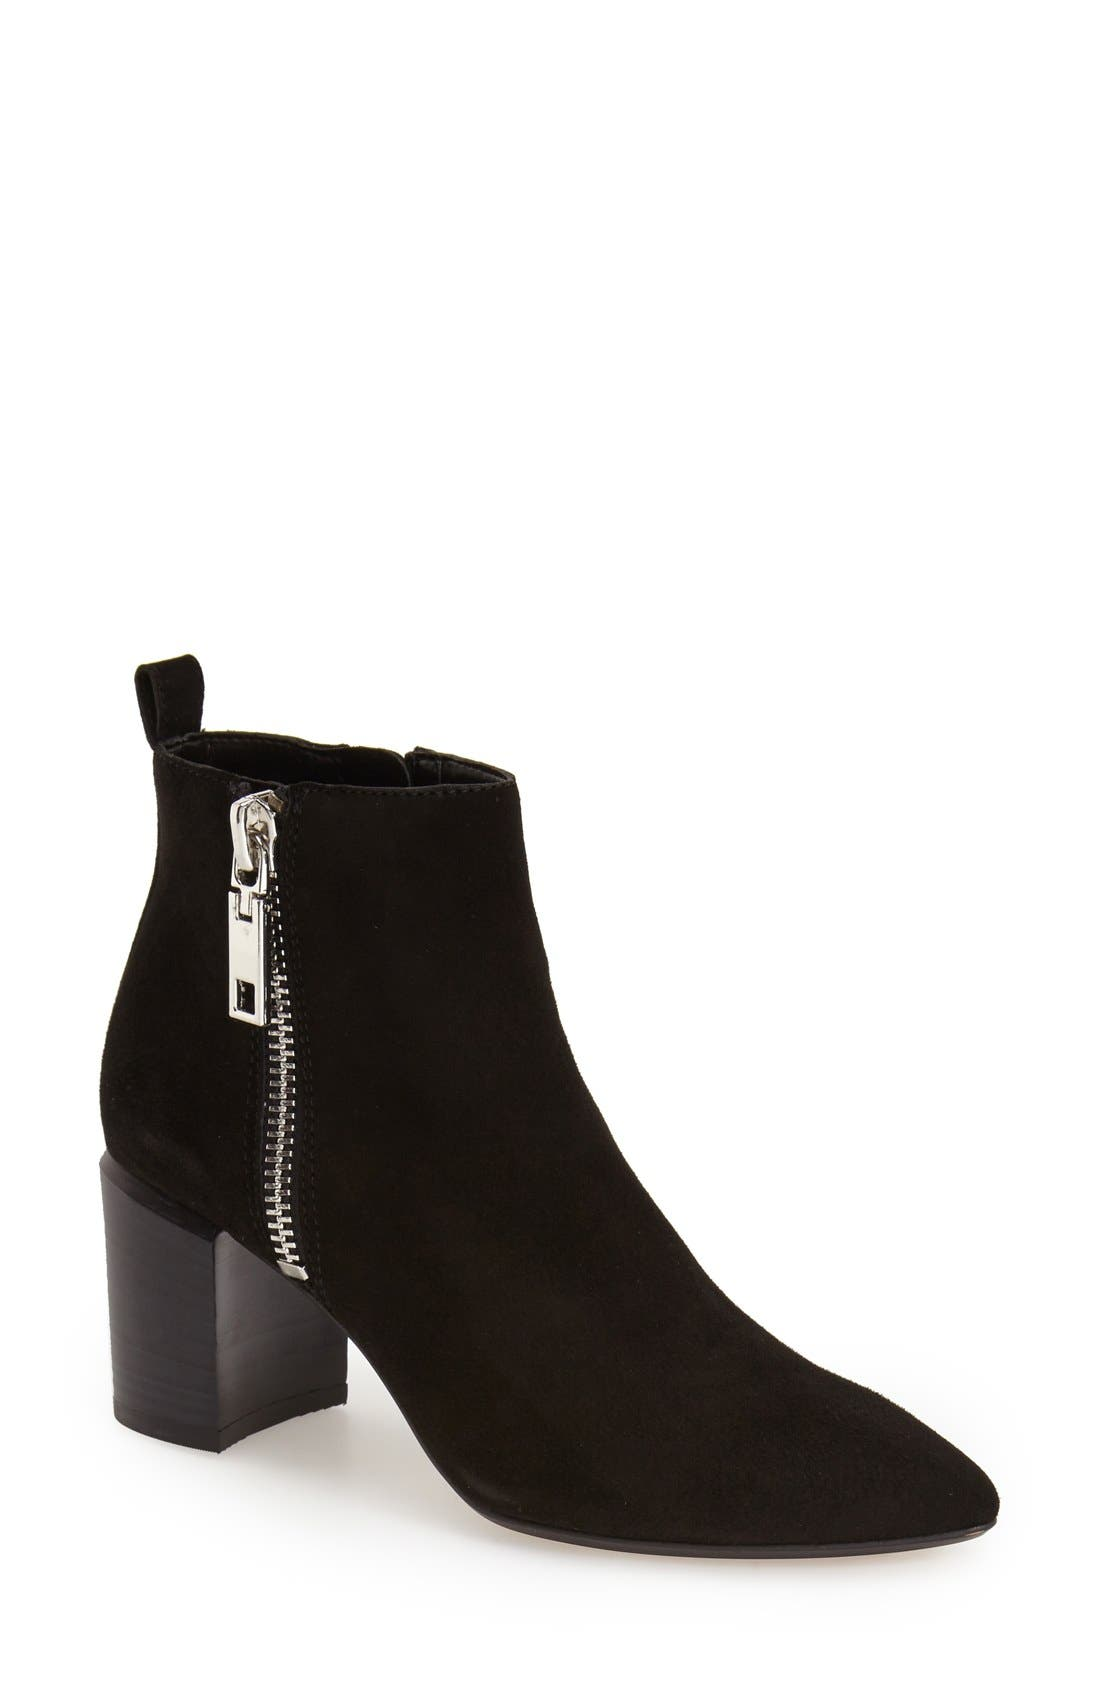 Alternate Image 1 Selected - Dolce Vita 'Ginnee' Pointy Toe Ankle Bootie (Women)